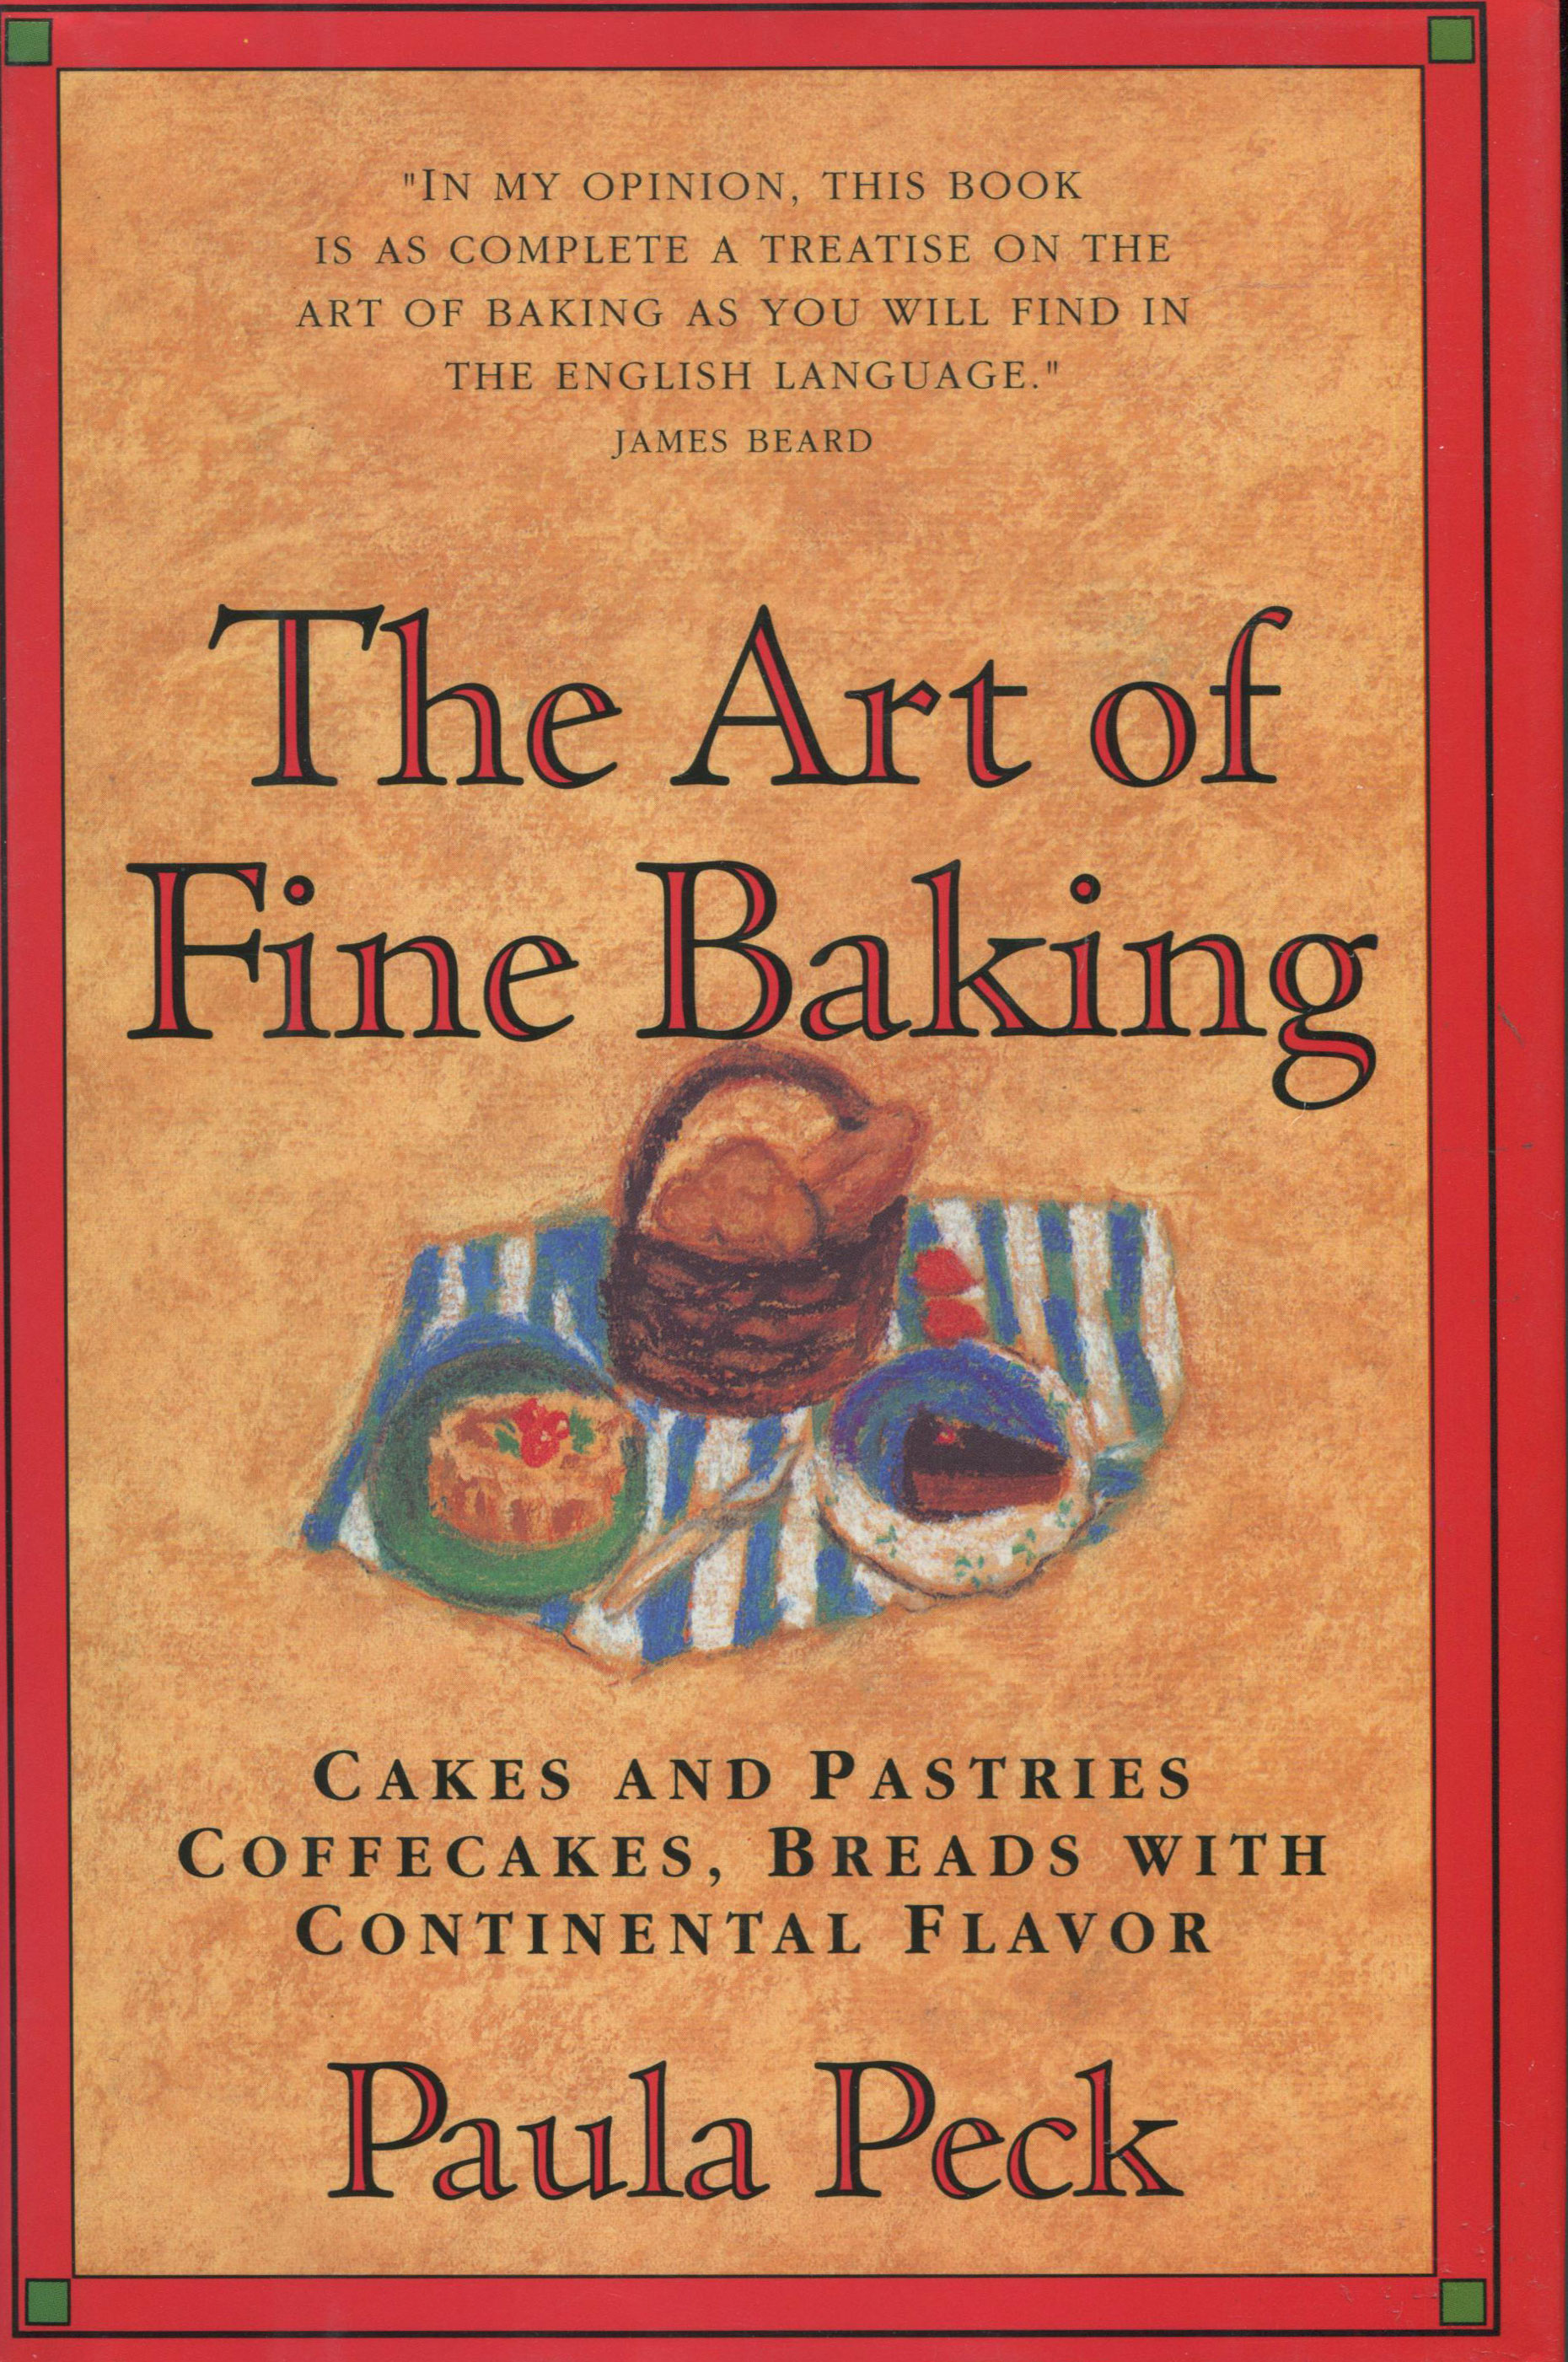 TBT Cookbook Review: The Art of Fine Baking